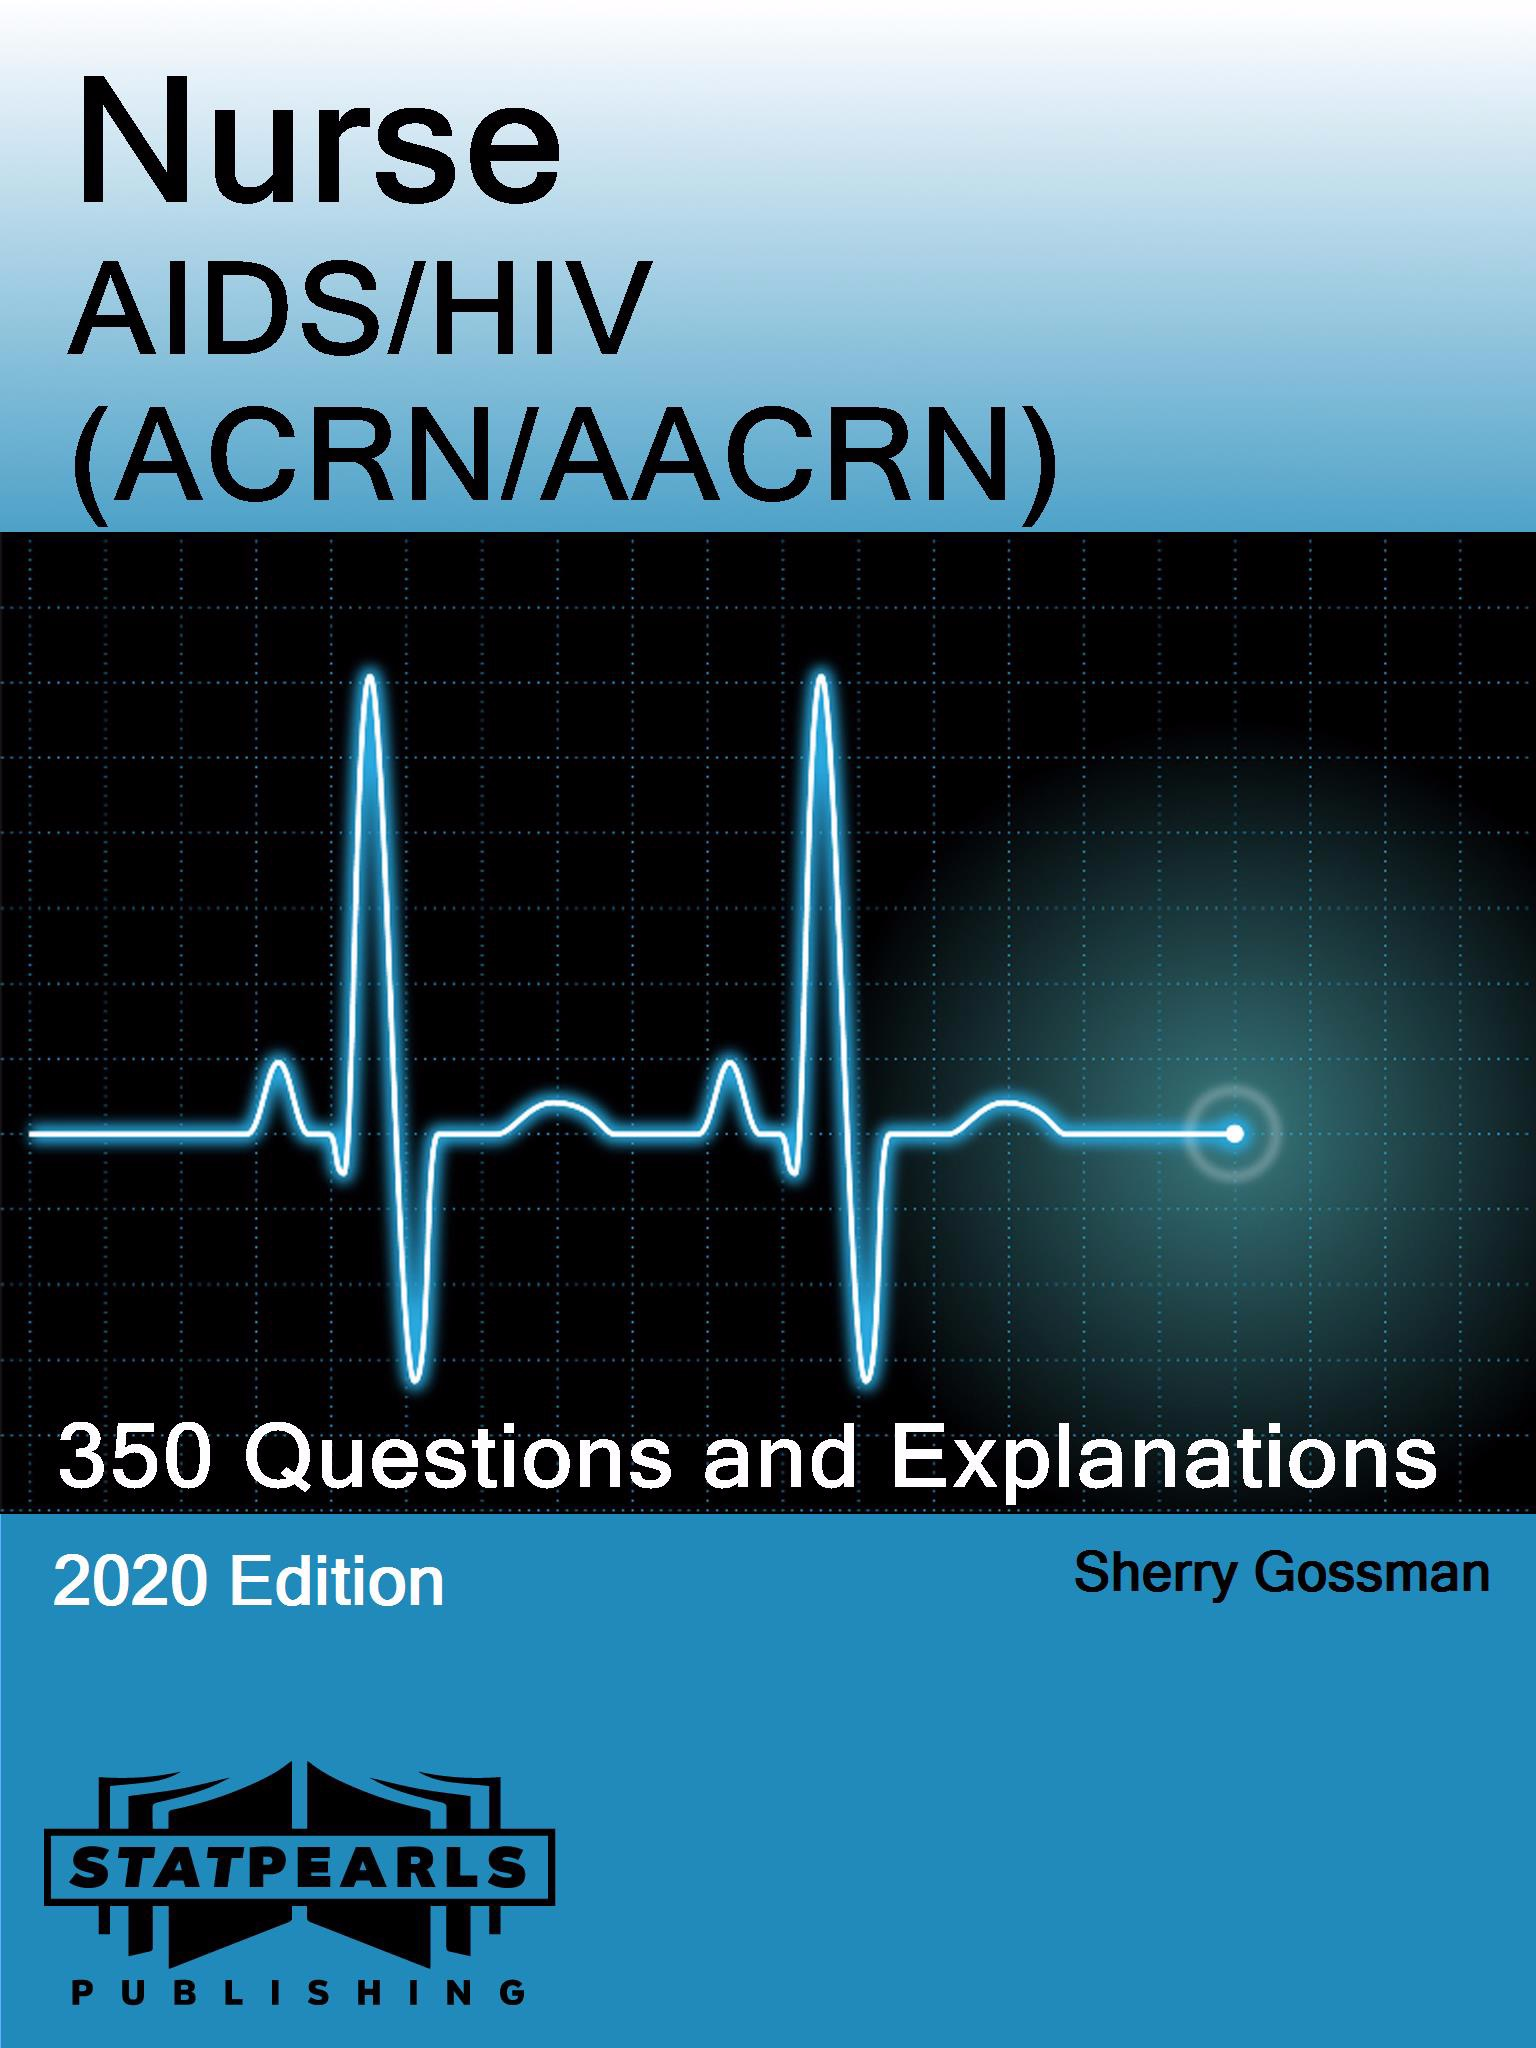 Nurse AIDS/HIV (ACRN/AACRN)